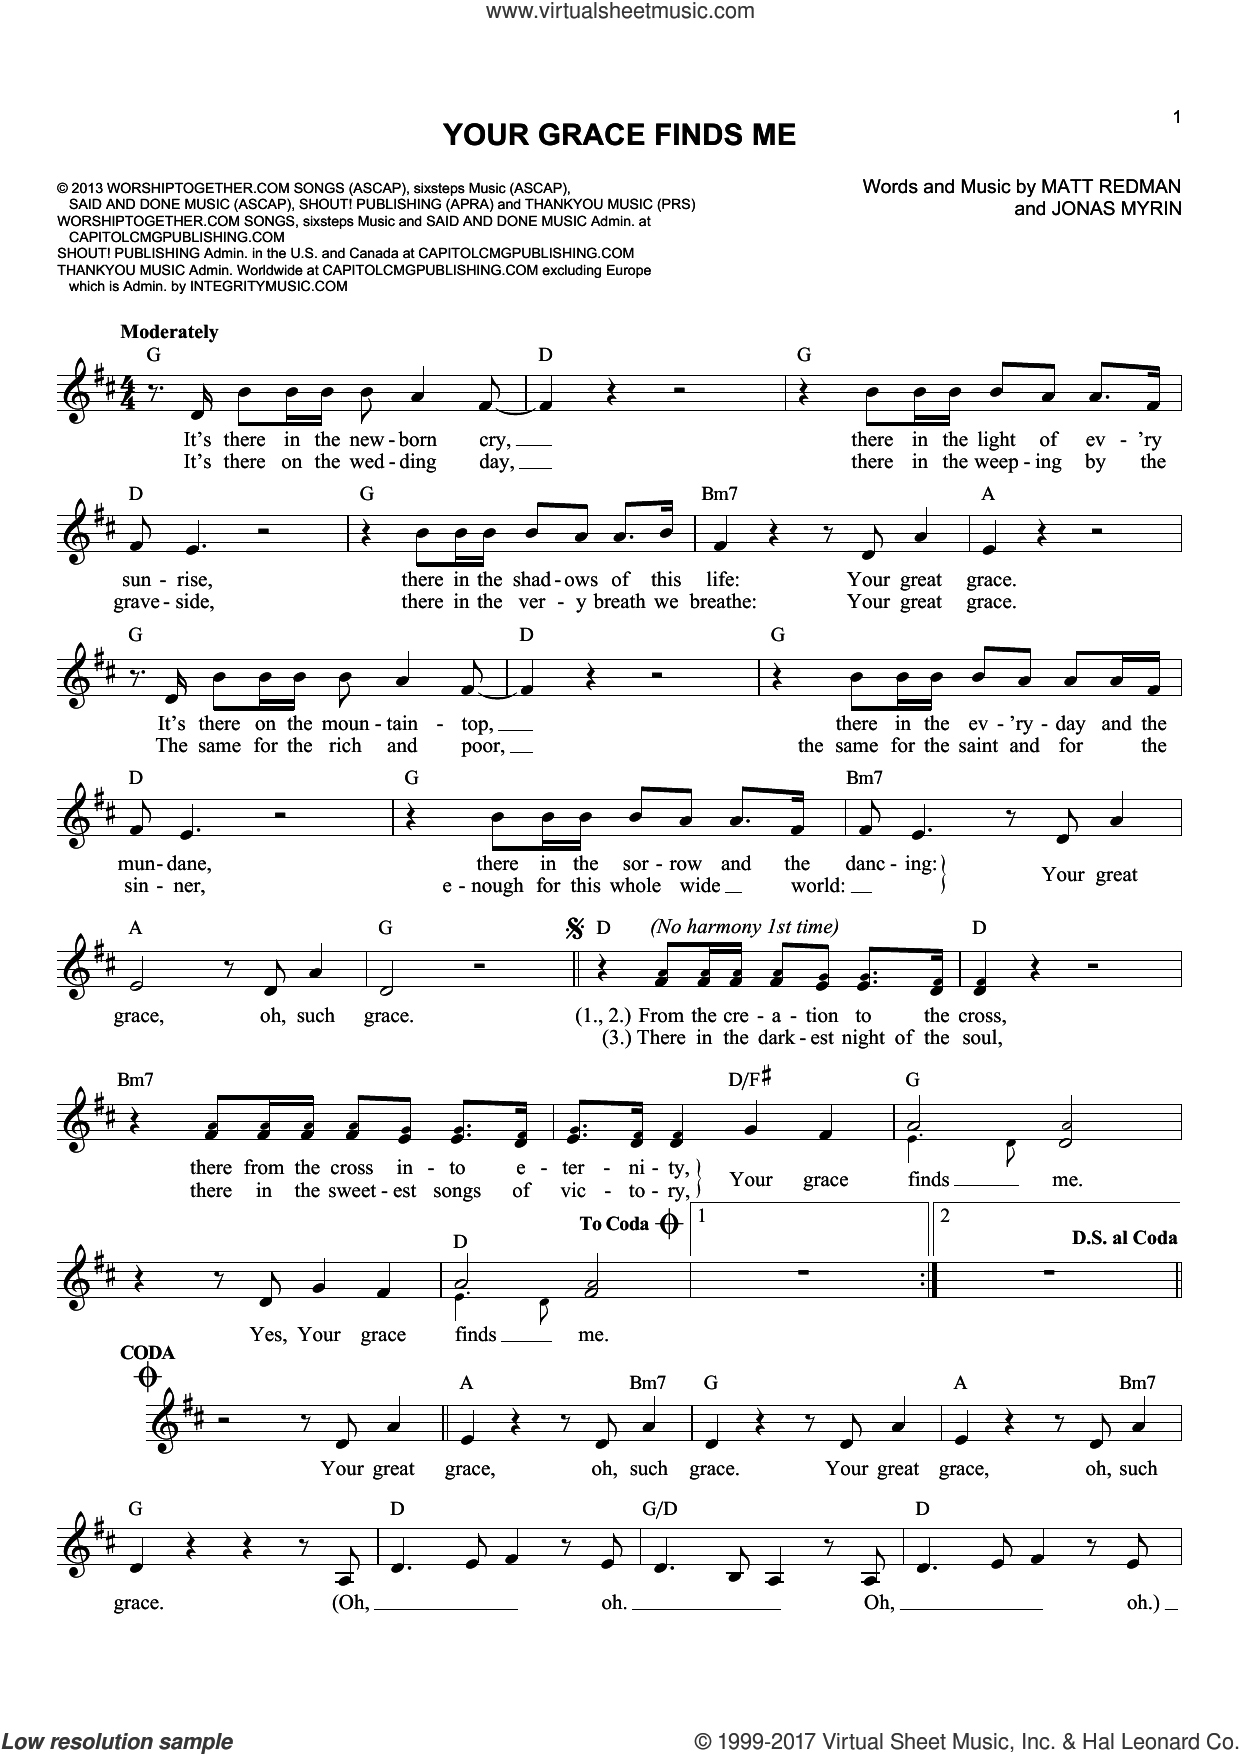 Your Grace Finds Me sheet music for voice and other instruments (fake book) by Jonas Myrin and Matt Redman, intermediate voice. Score Image Preview.